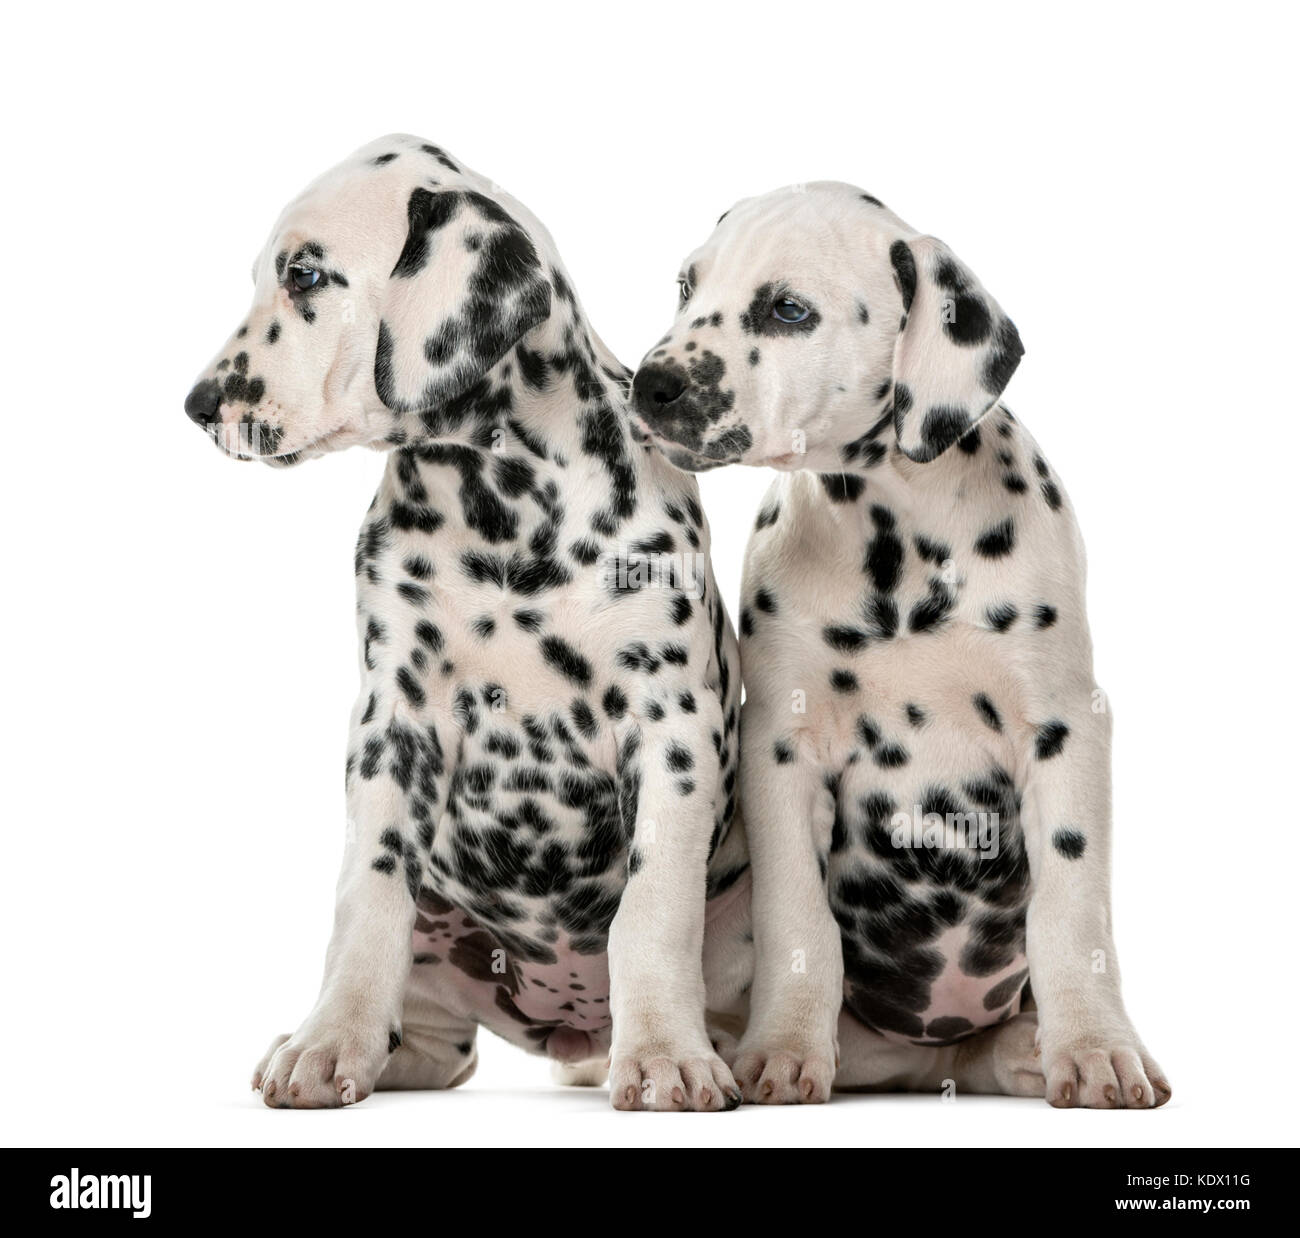 Two Dalmatian puppies sitting in front of a white background - Stock Image